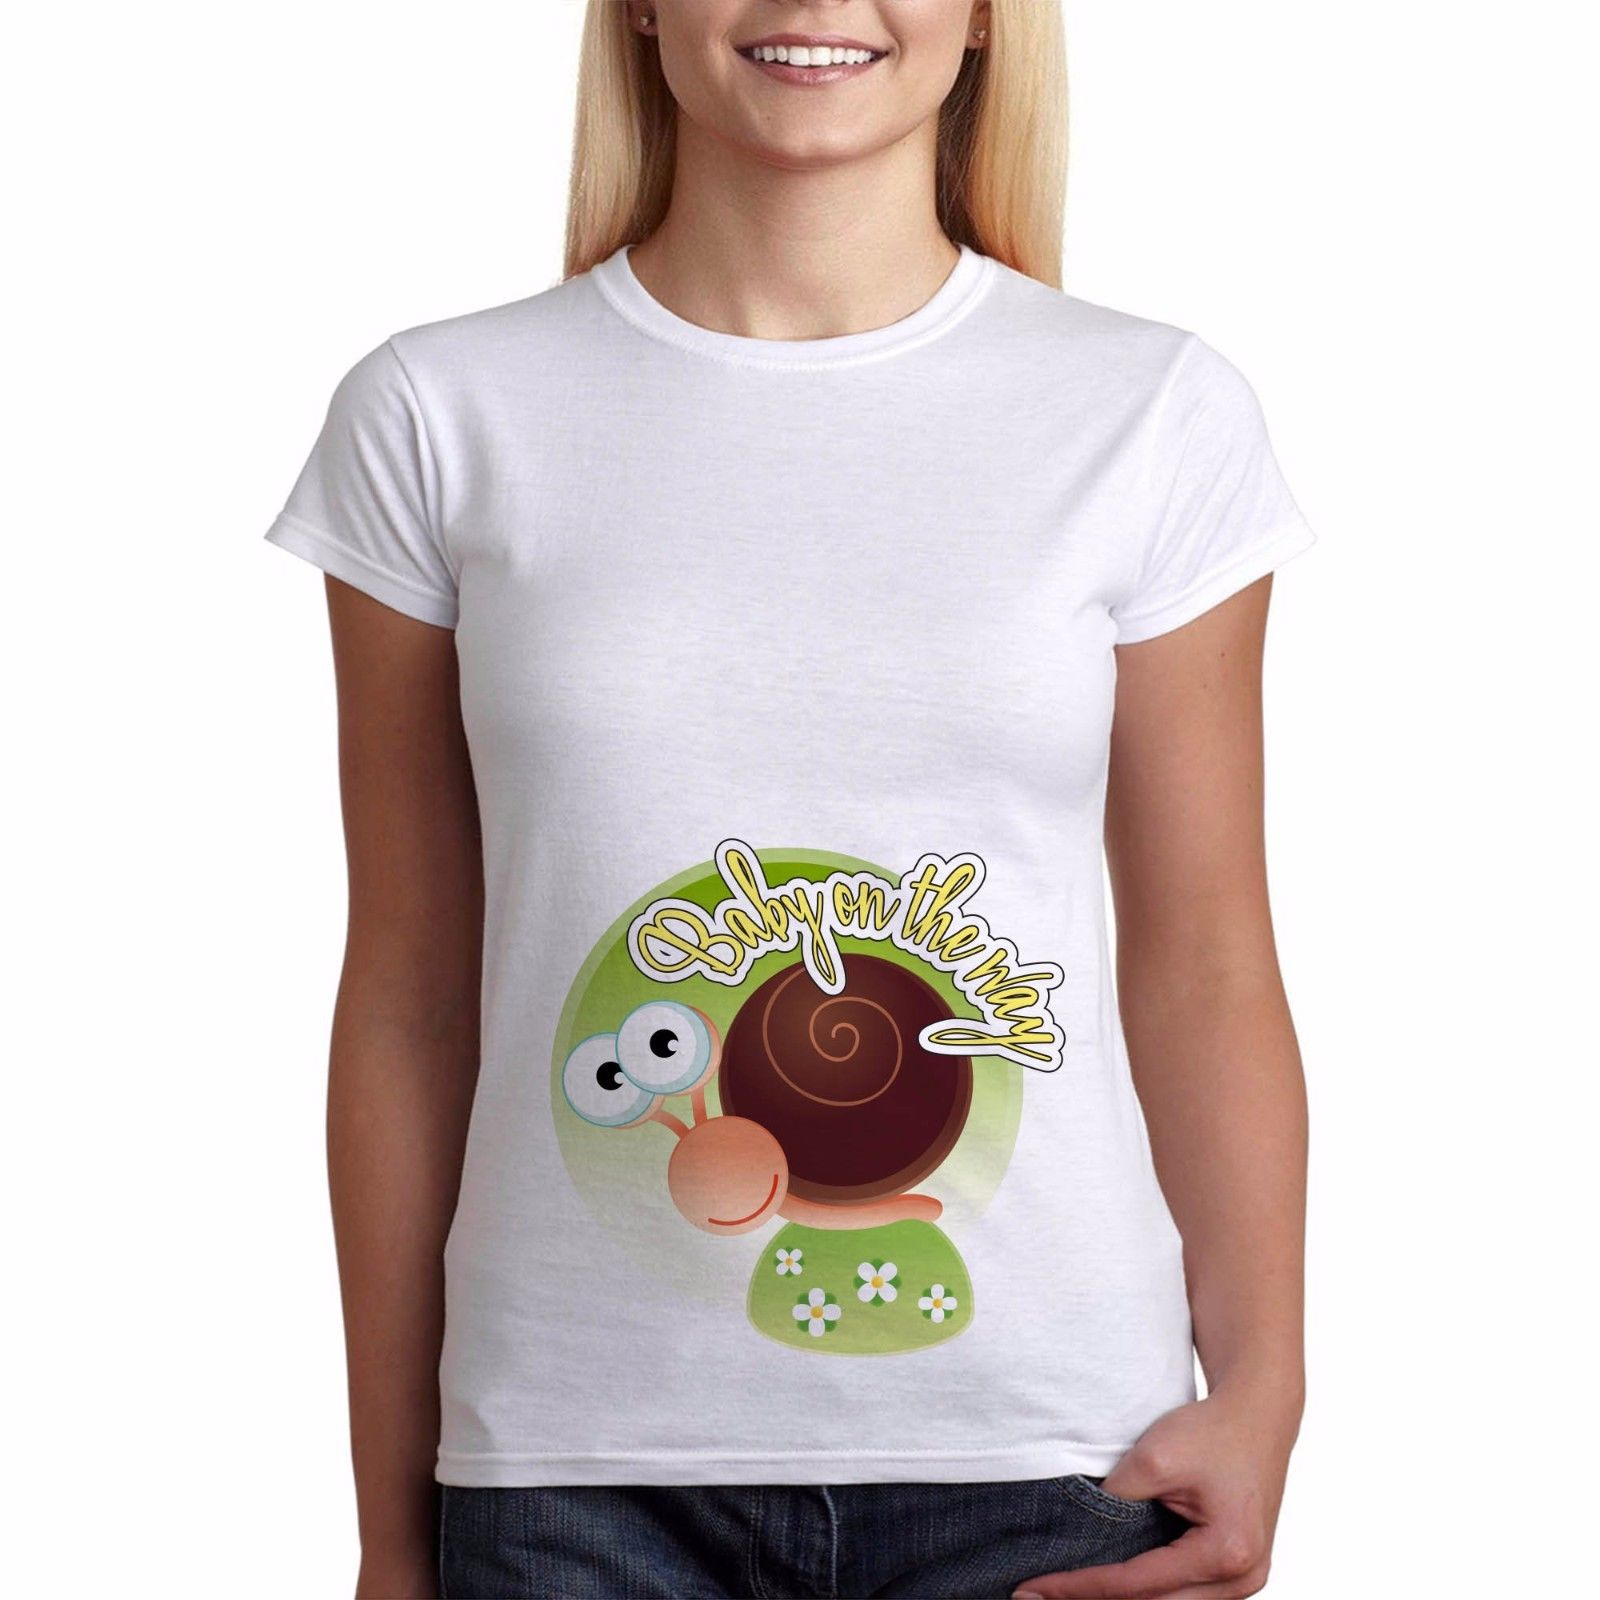 Design your own t-shirt maternity - Pregnancy T Shirt Baby On The Way Funny Maternity Baby Shower Snail Perfect Gift Design